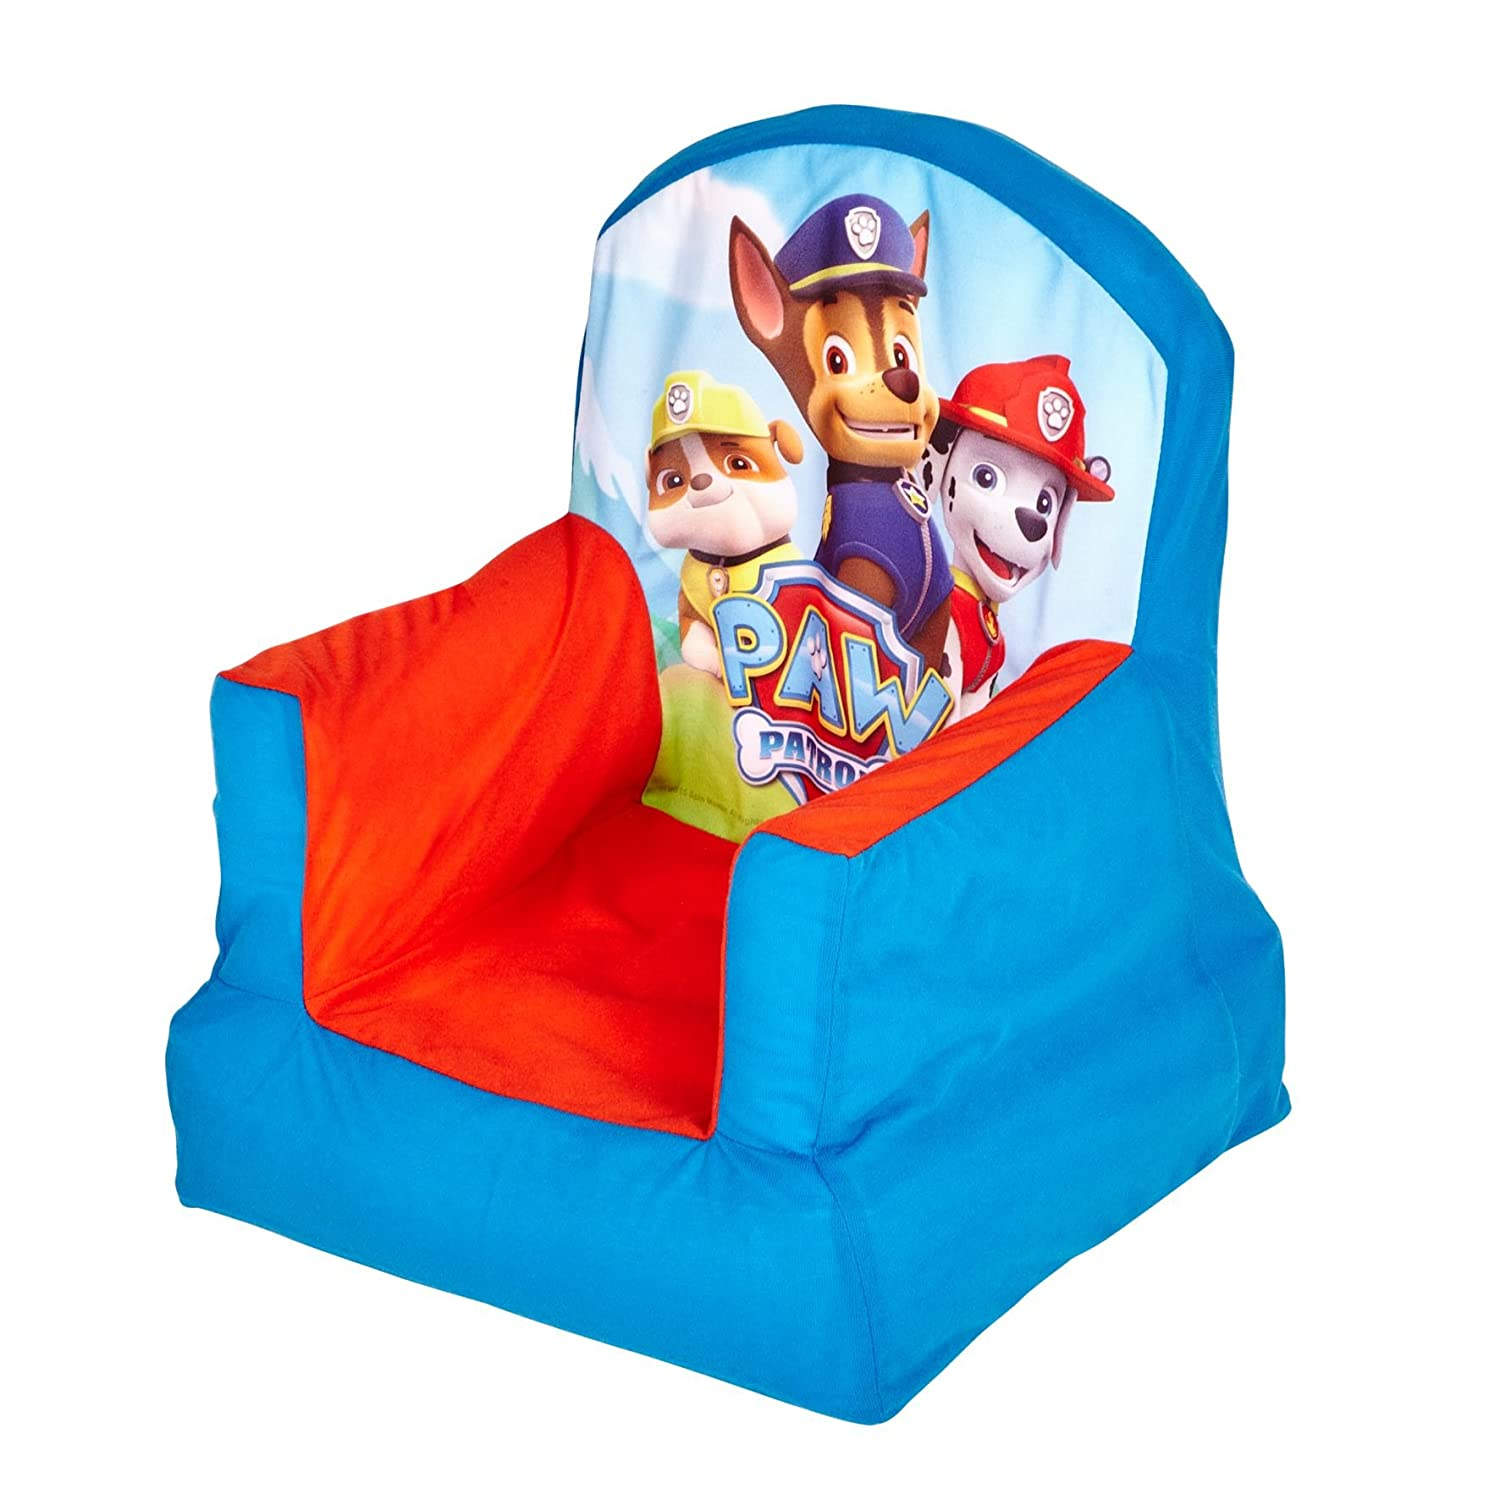 paw patrol inflatable chair for kids amazon co uk kitchen home